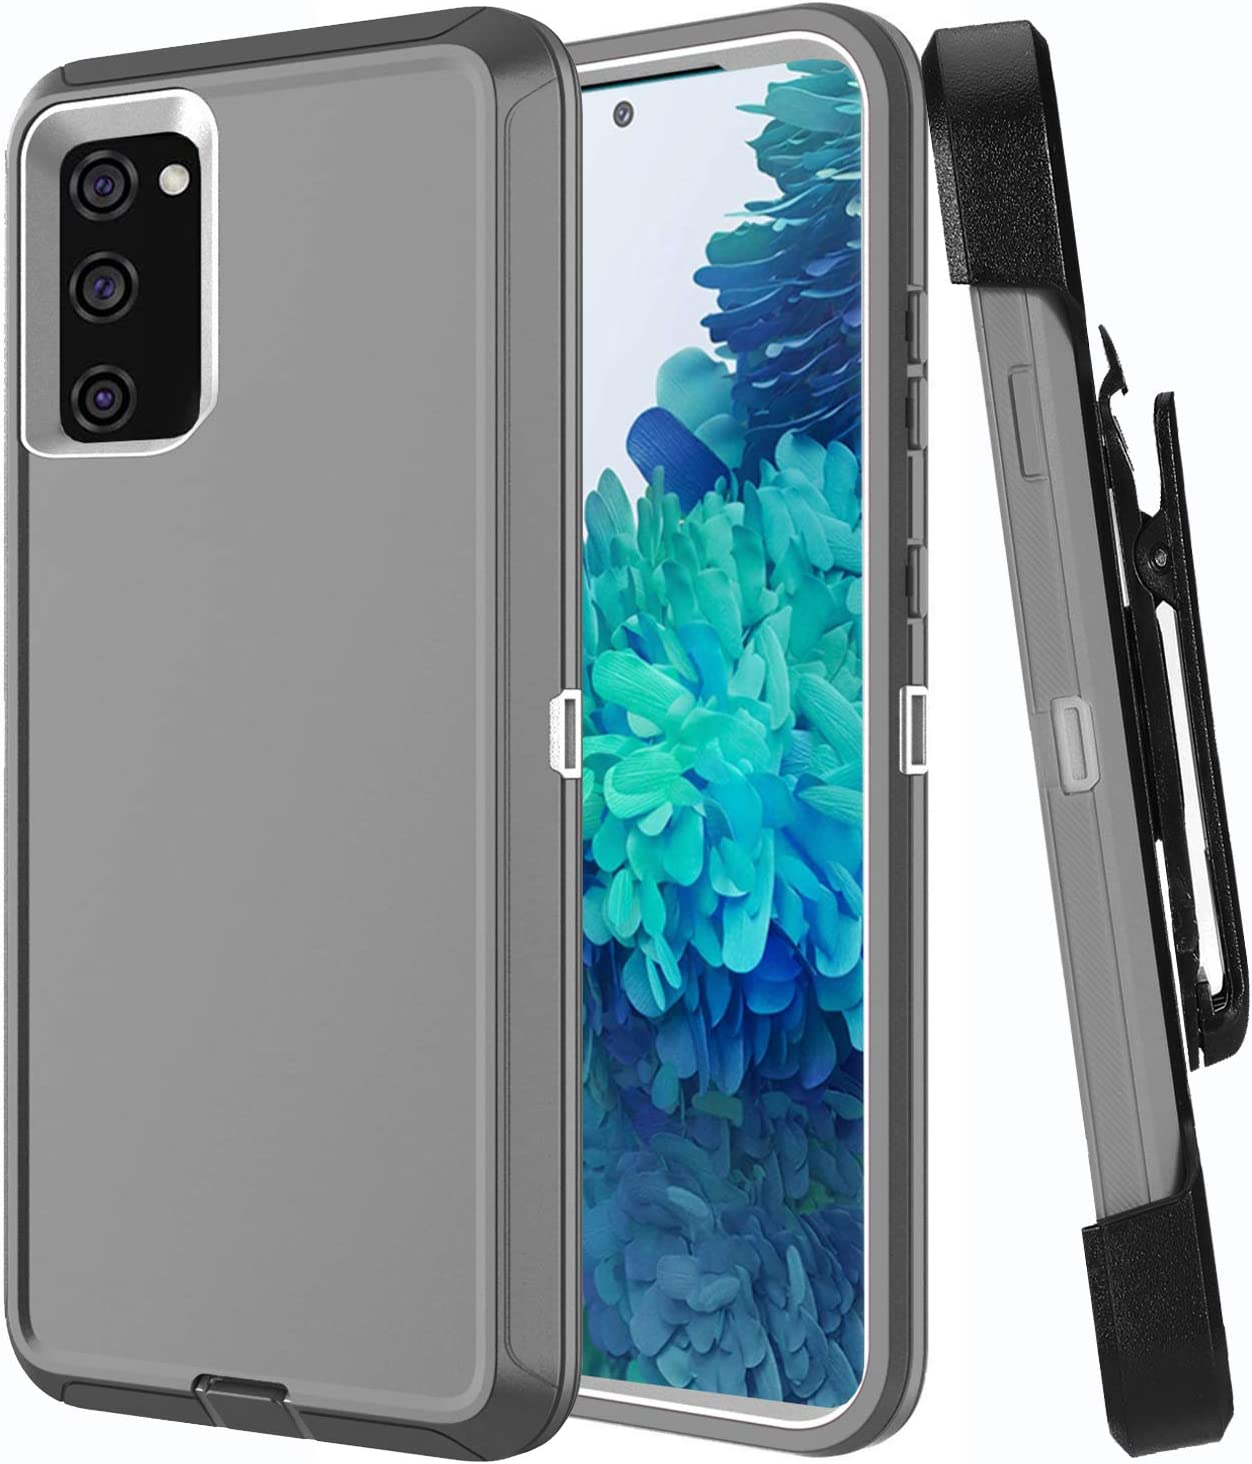 Aimoll-88 Galaxy S20 FE 5G Case with Screen Protector Heavy Duty Cover for Samsung S20 FE 5G Case Belt Clip Hybrid Shockproof Drop Protection Holster for Samsung Galaxy S20 FE 5G 6.5 inch (Grey/White)